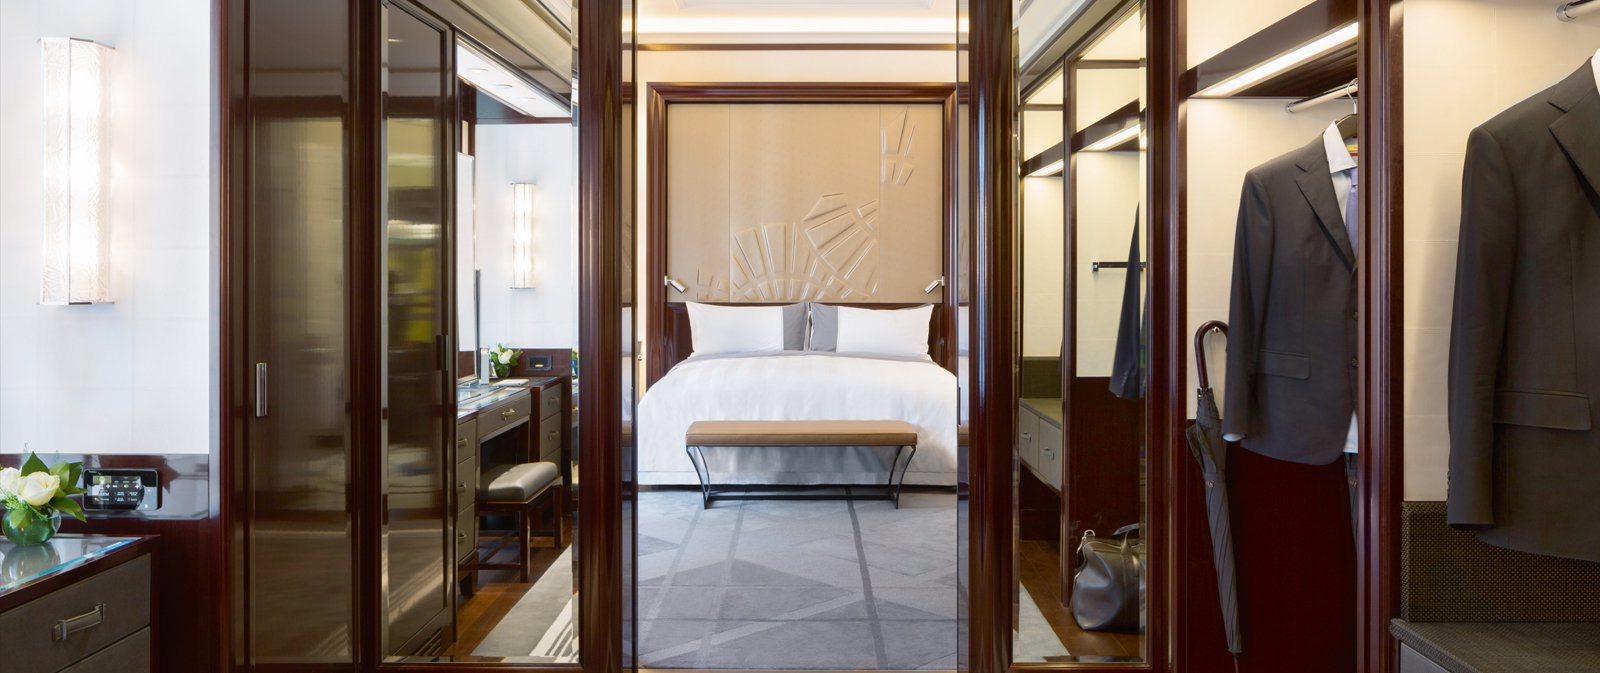 Just steps from the Arc de Triomphe , The Peninsular Paris is the perfect place for a romantic city escape